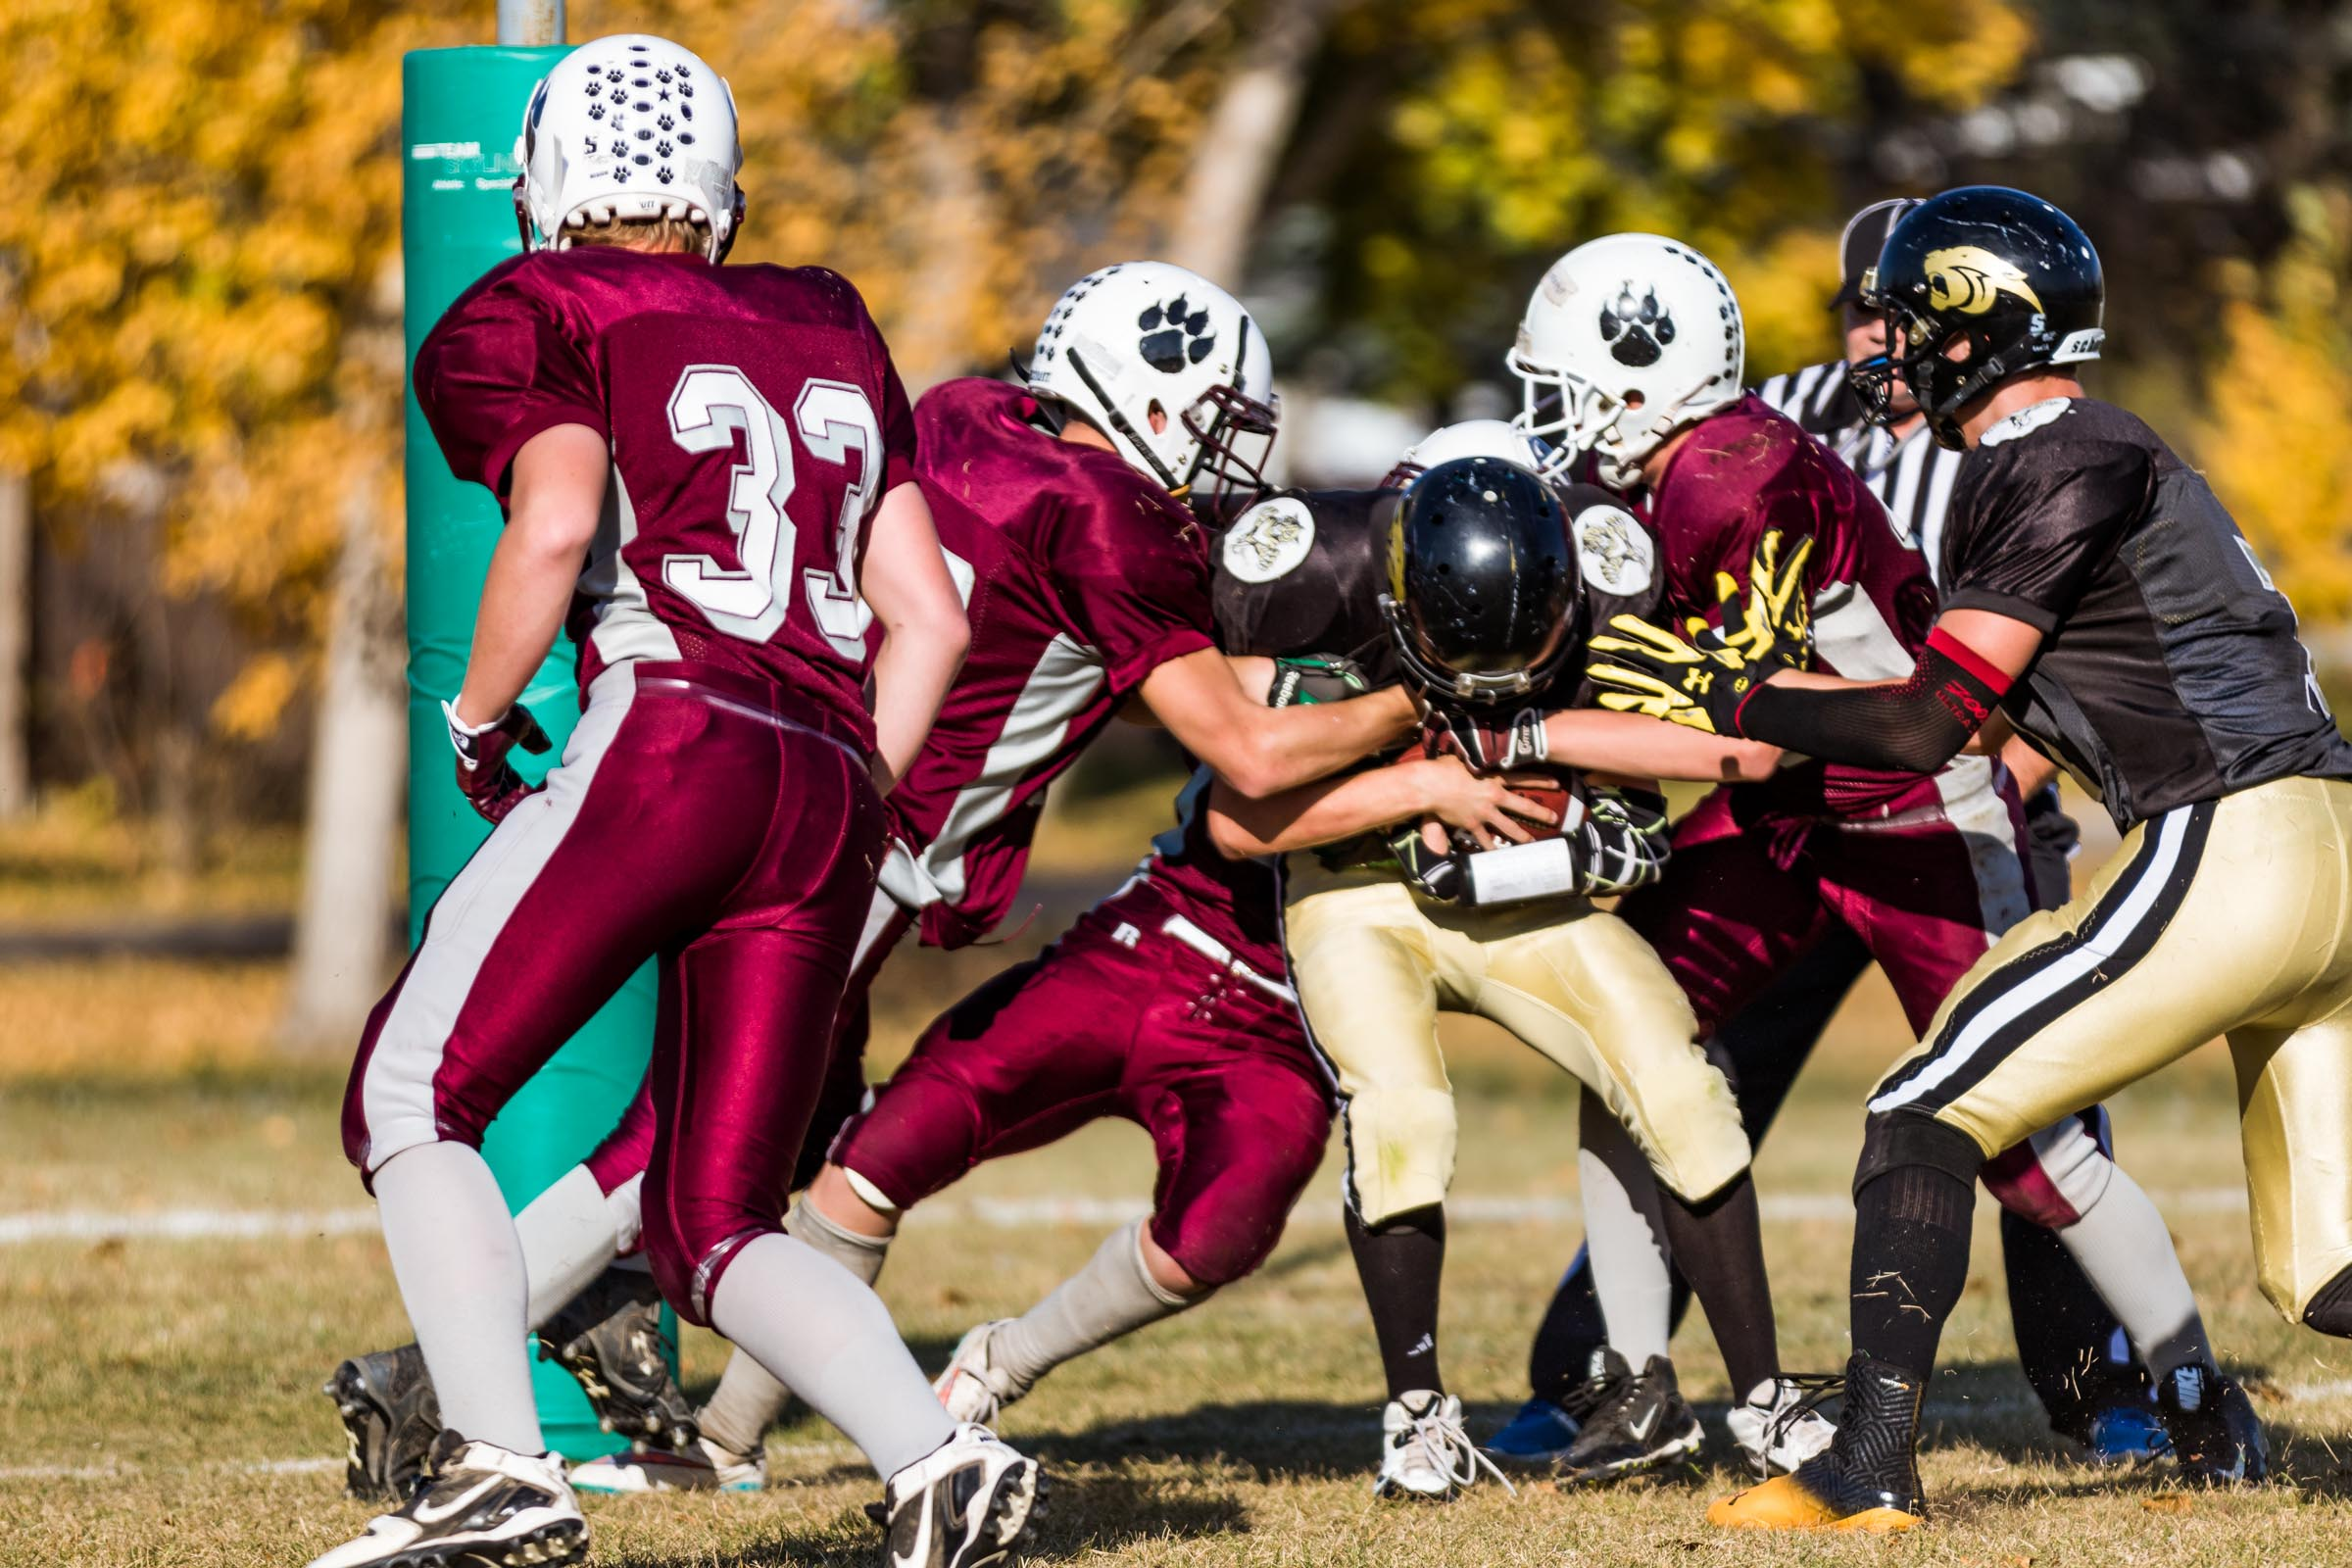 0070_macklinsabres_haguepanthers_football_September 30, 2016.jpg